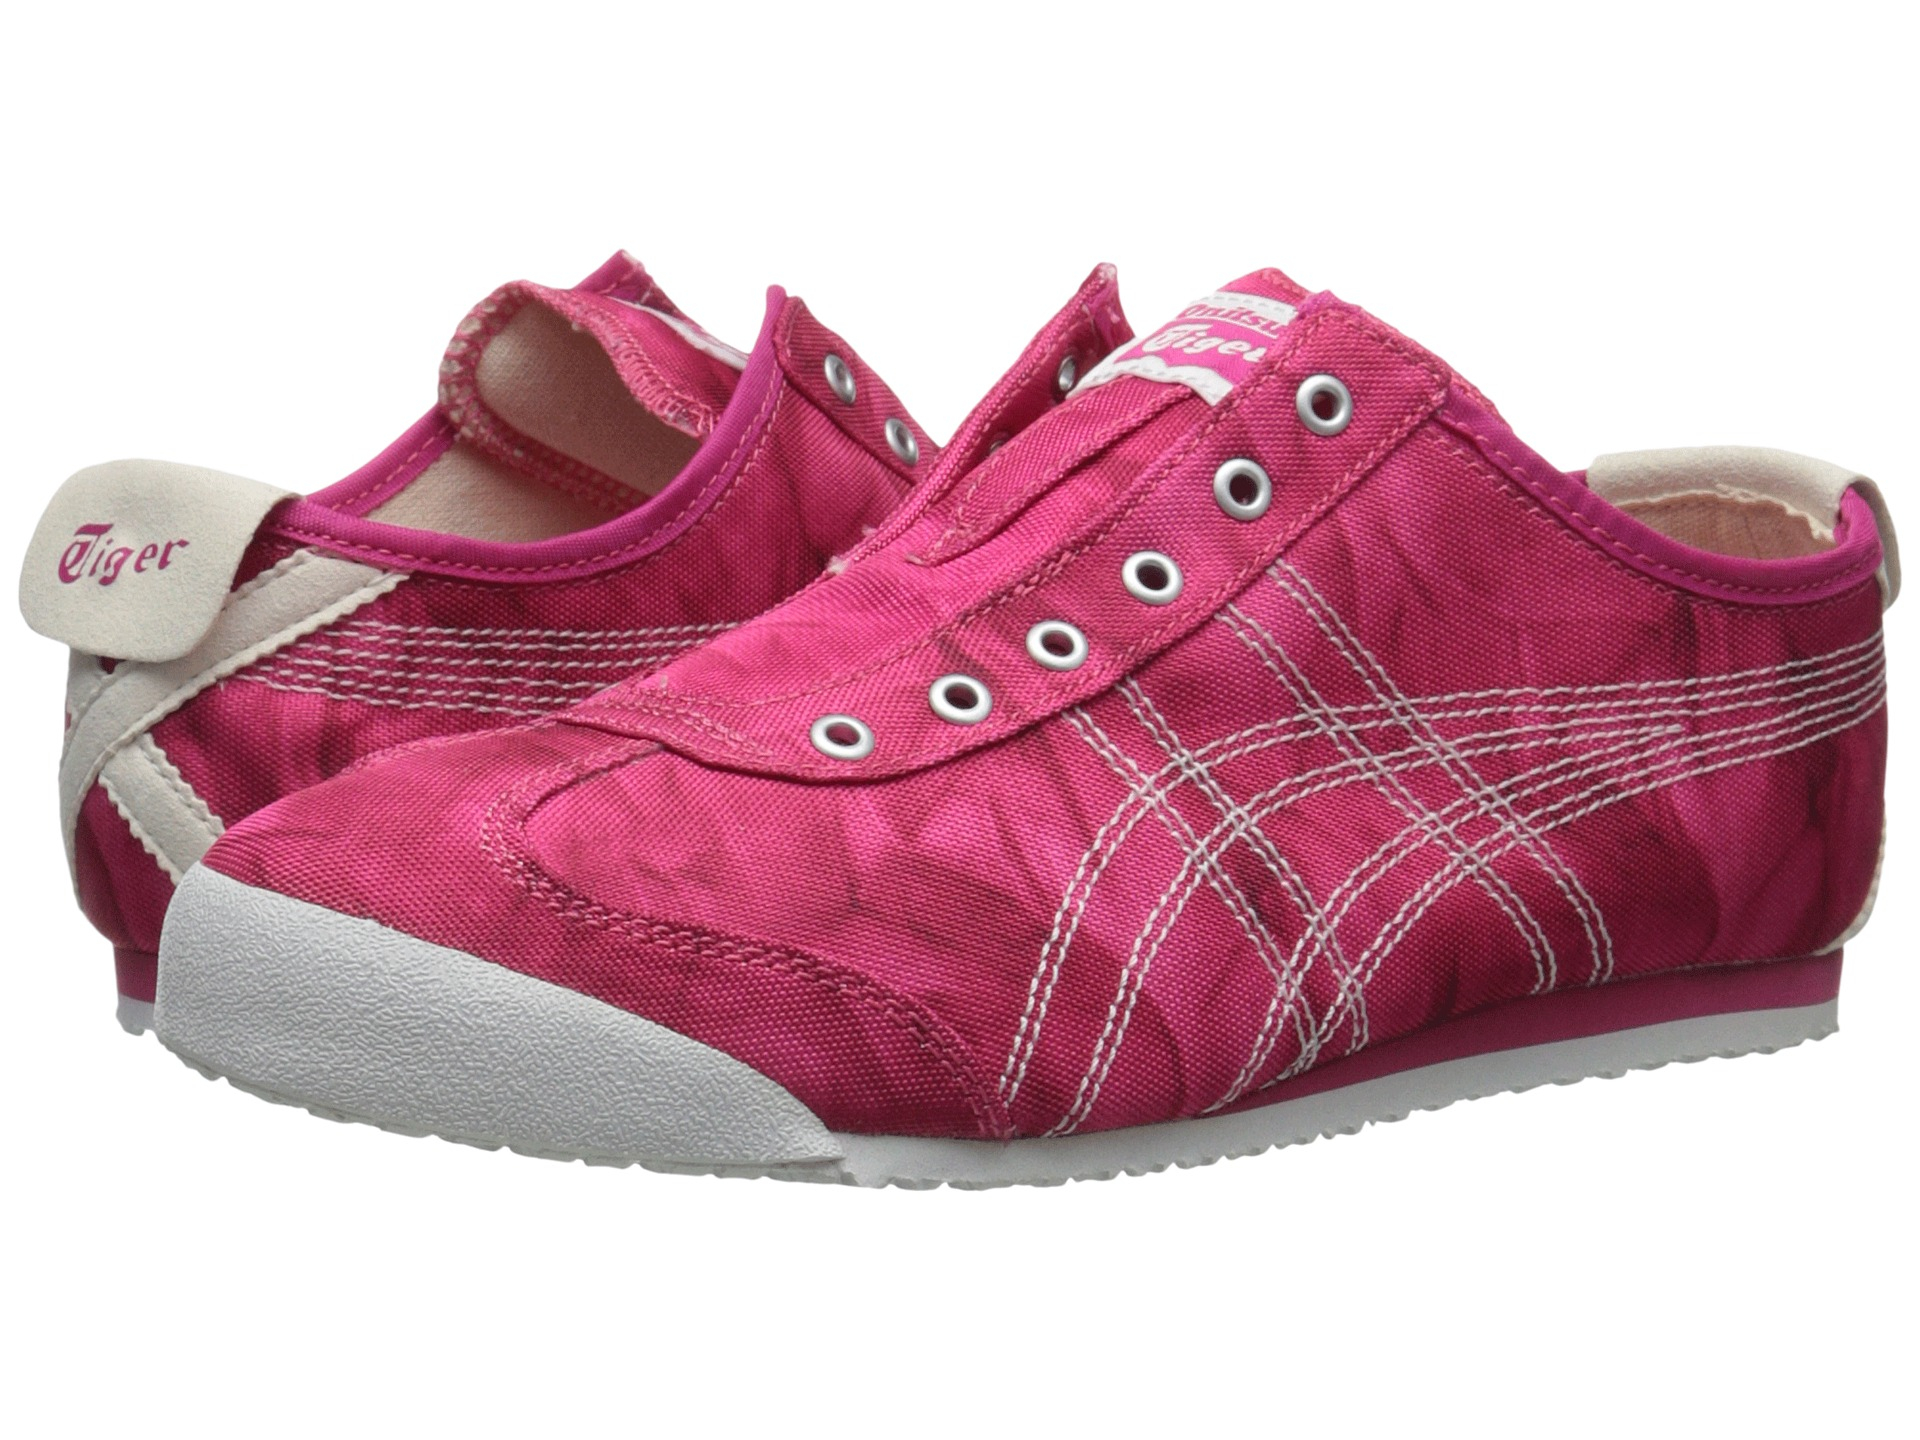 85c59d4a5d27 ... Lyst - Asics Mexico 66® Slip-on in Purple .